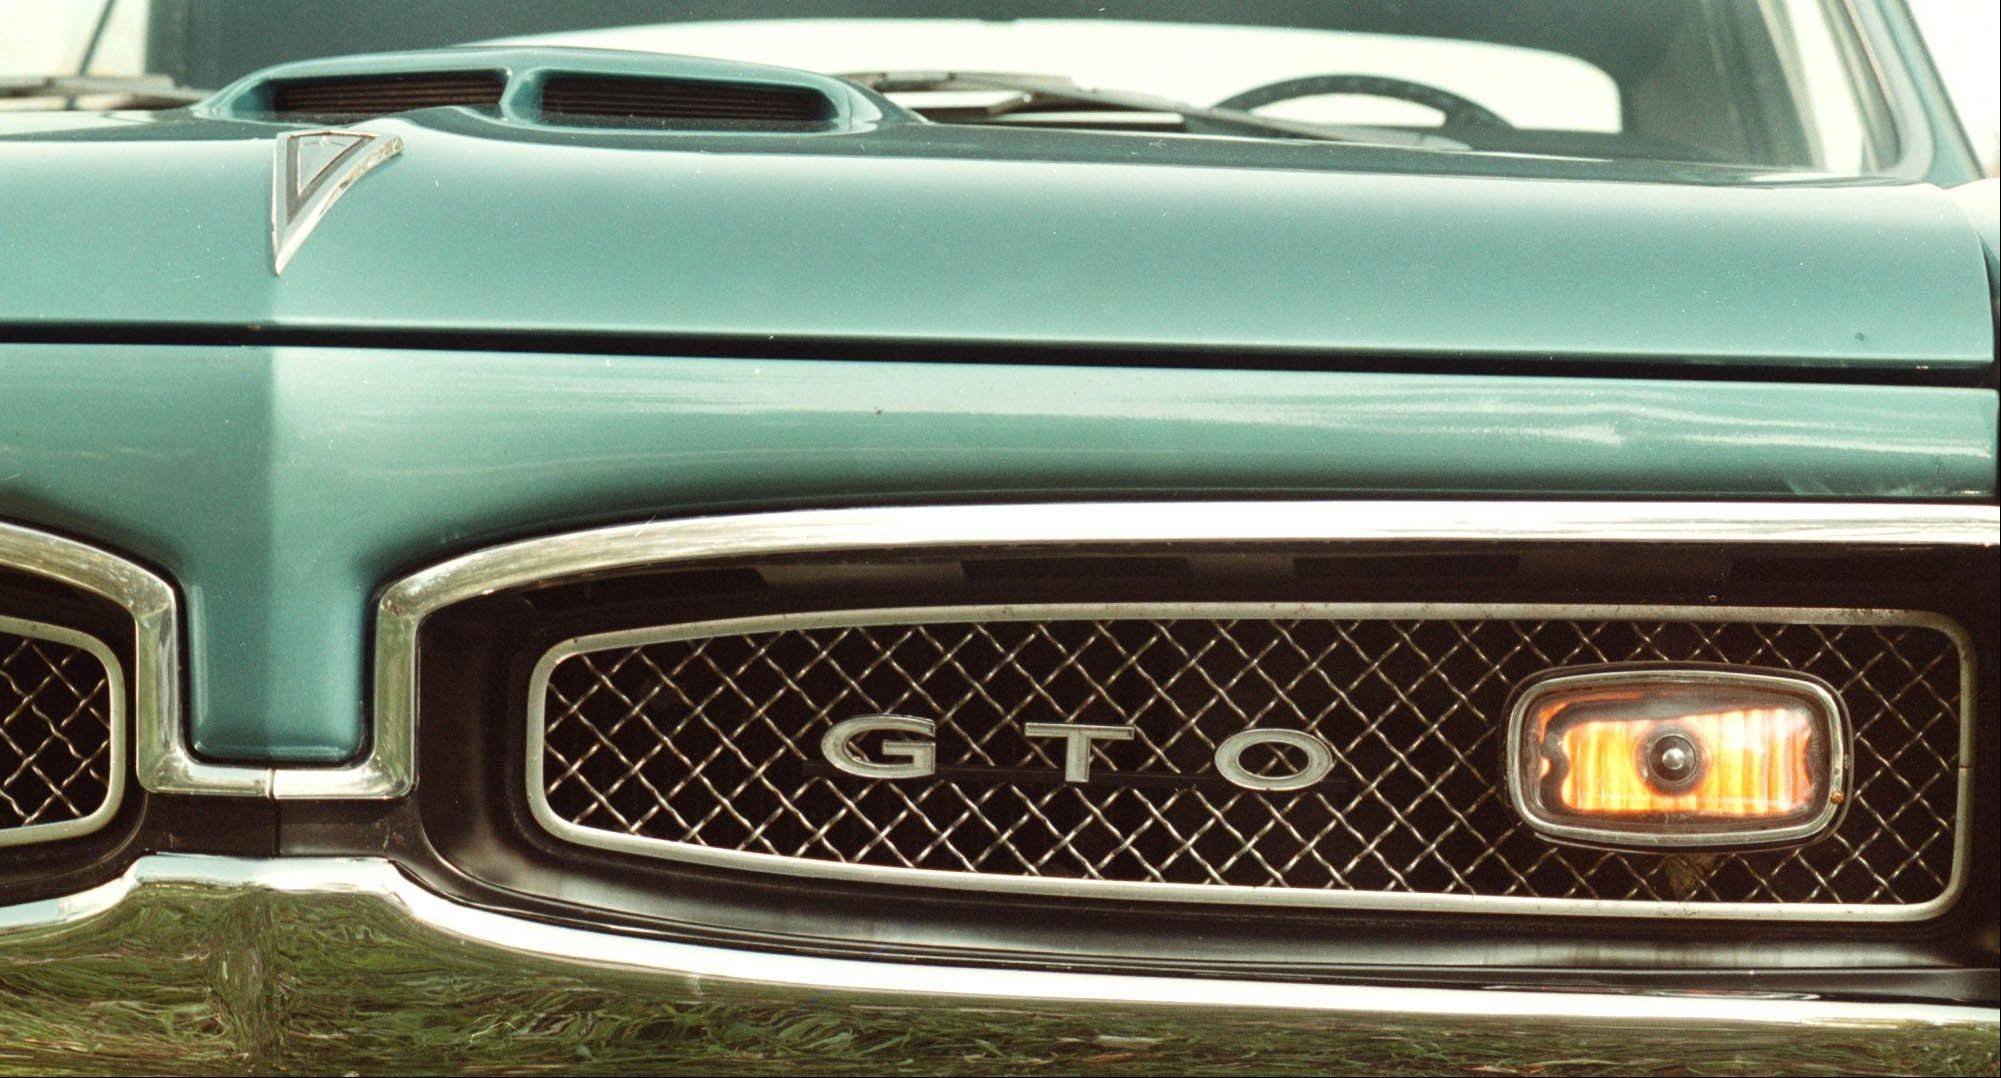 The hood ornament of a 1967 Pontiac GTO in Sturtevant, Wis.